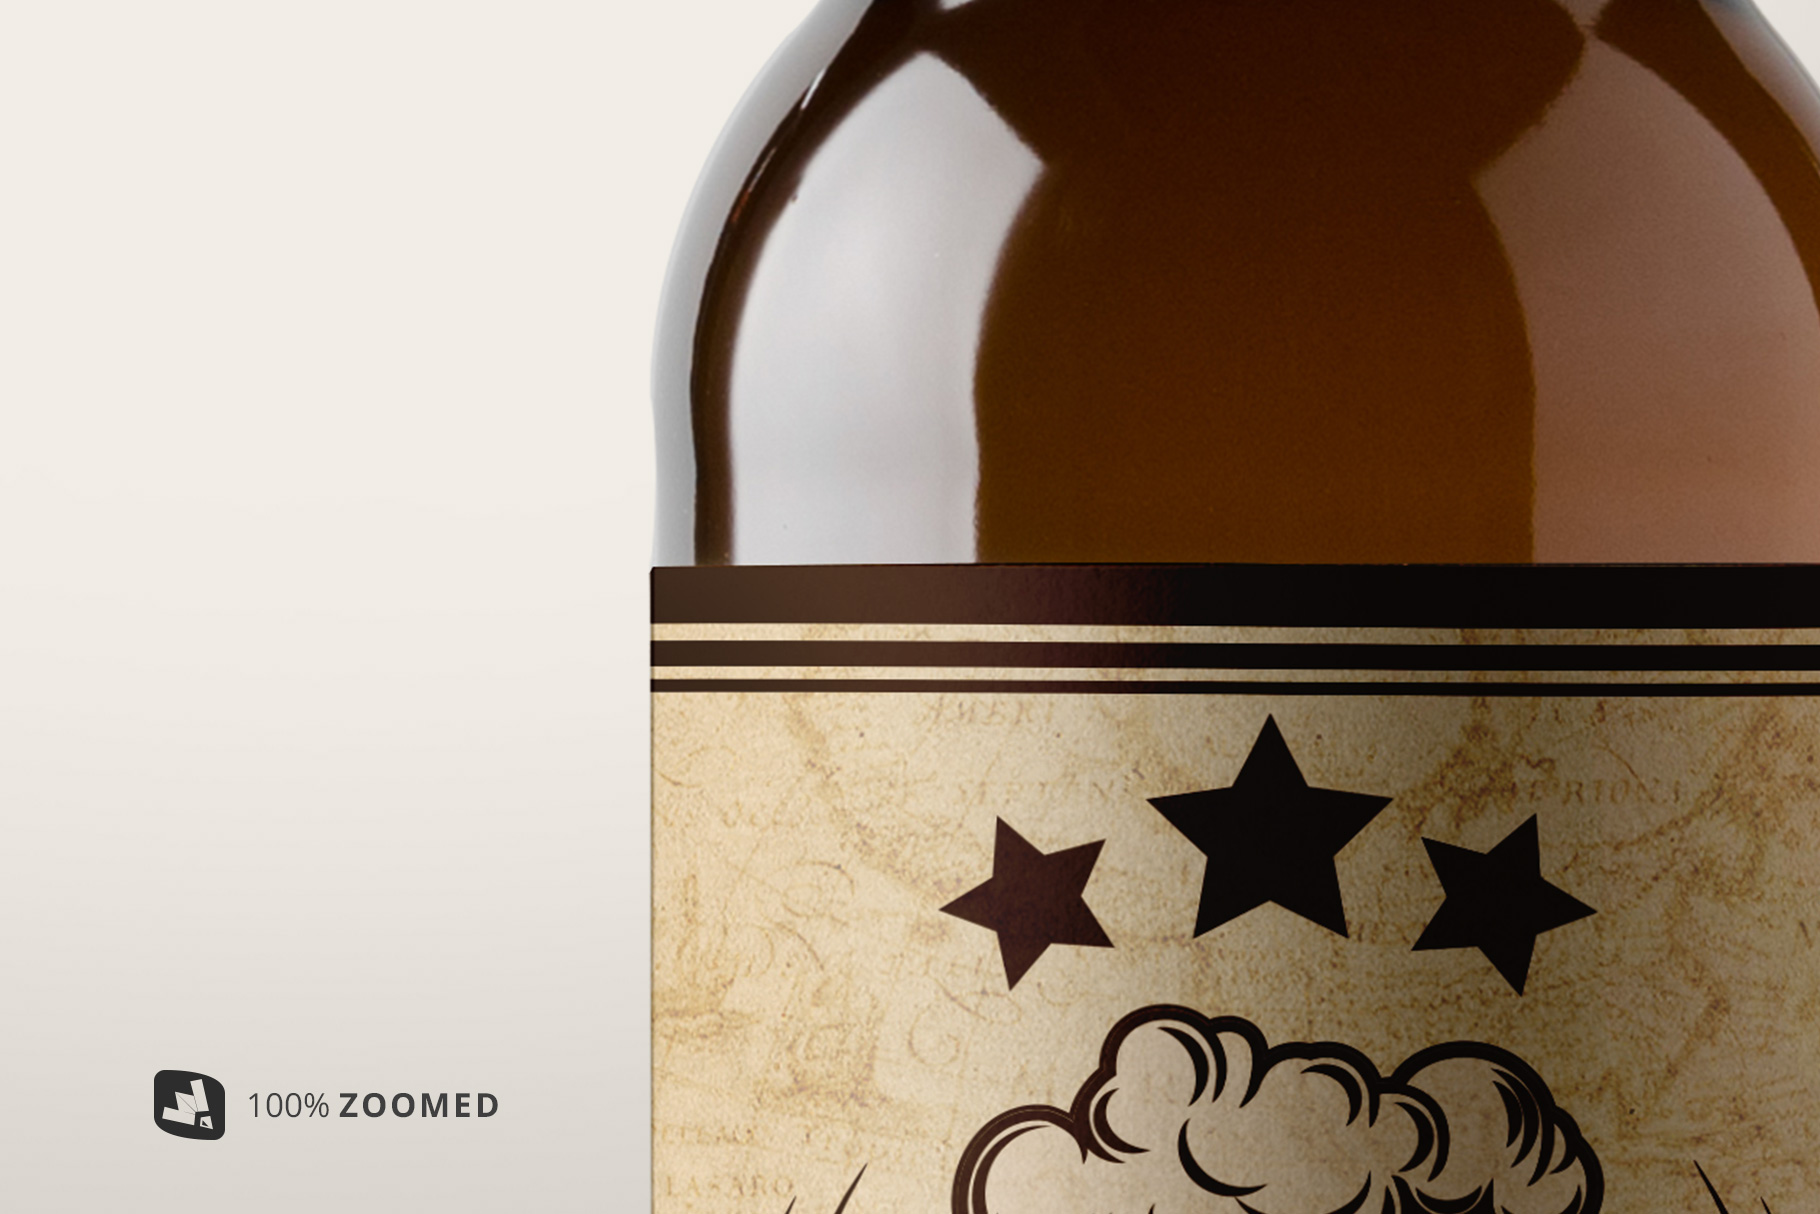 zoomed in image of the craft beer bottle packaging mockup